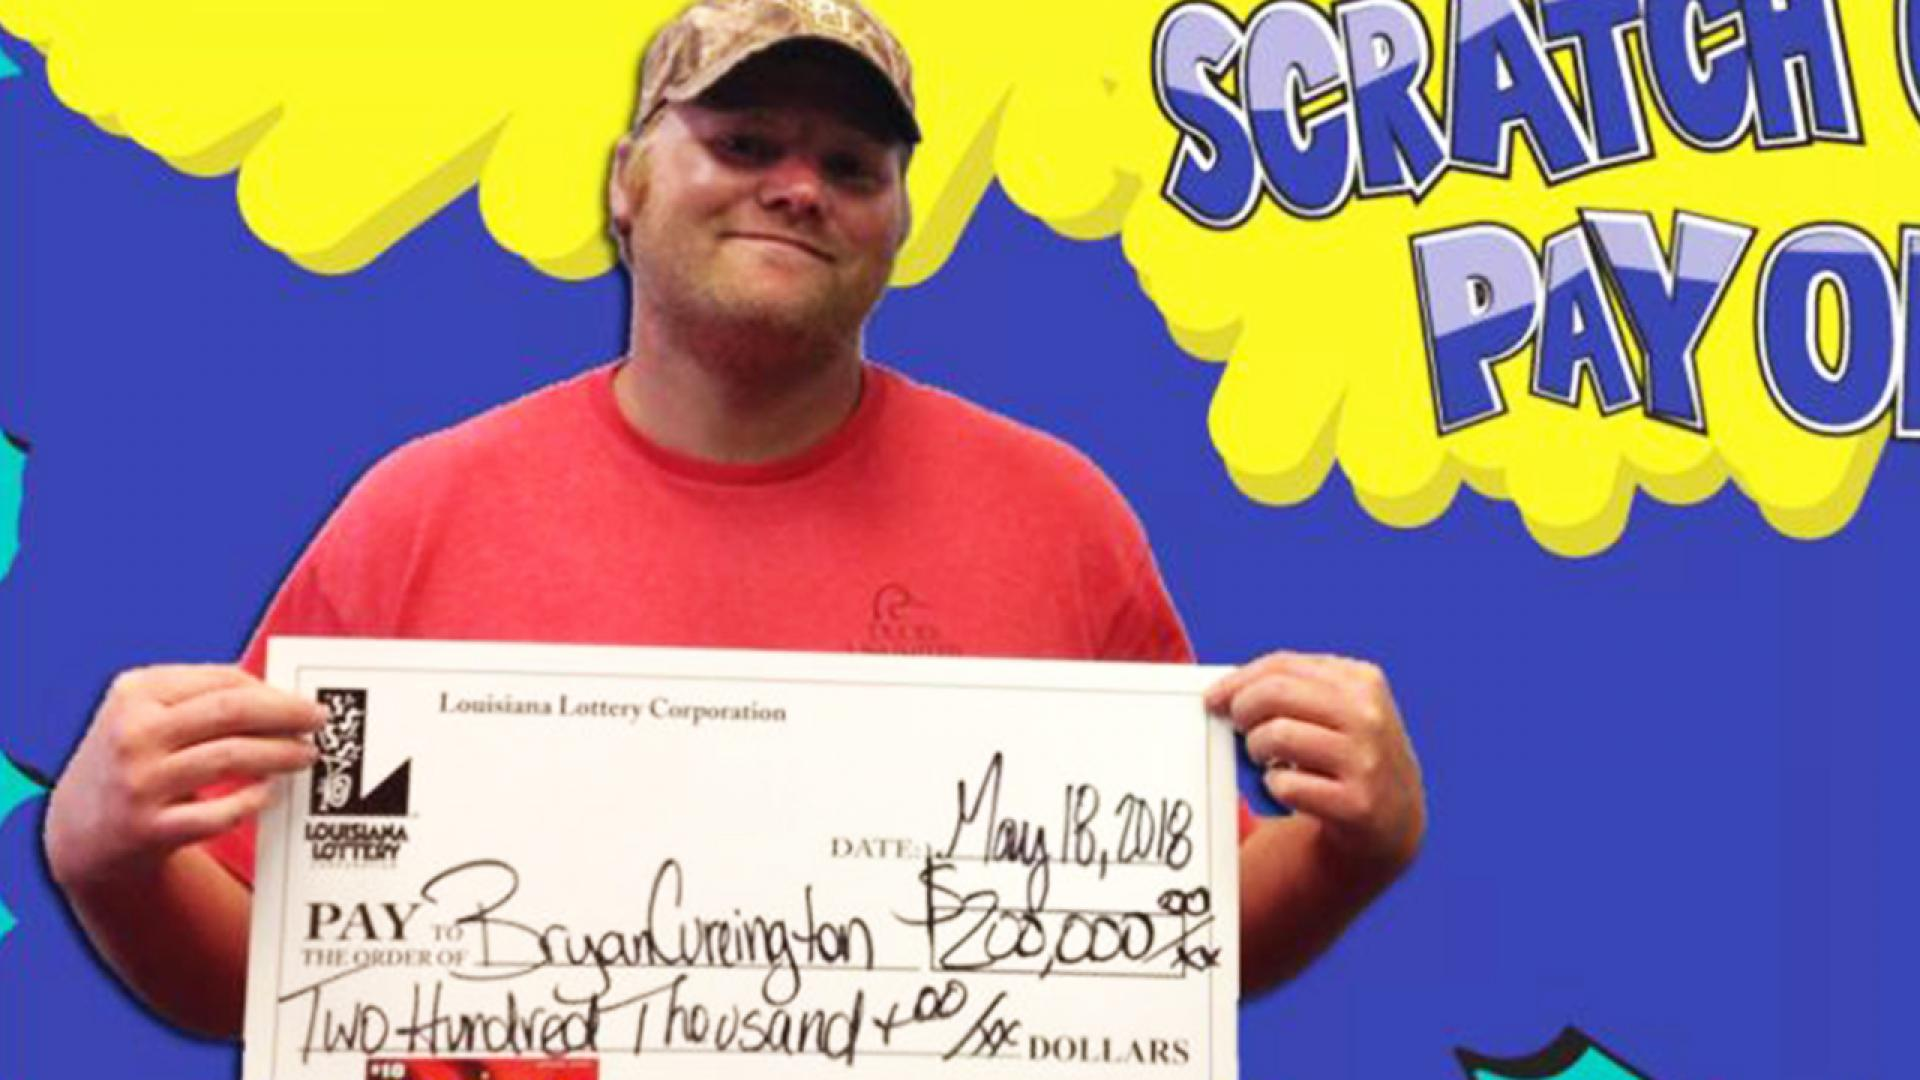 Bryan Cureington, 35, holds up his lottery payout.